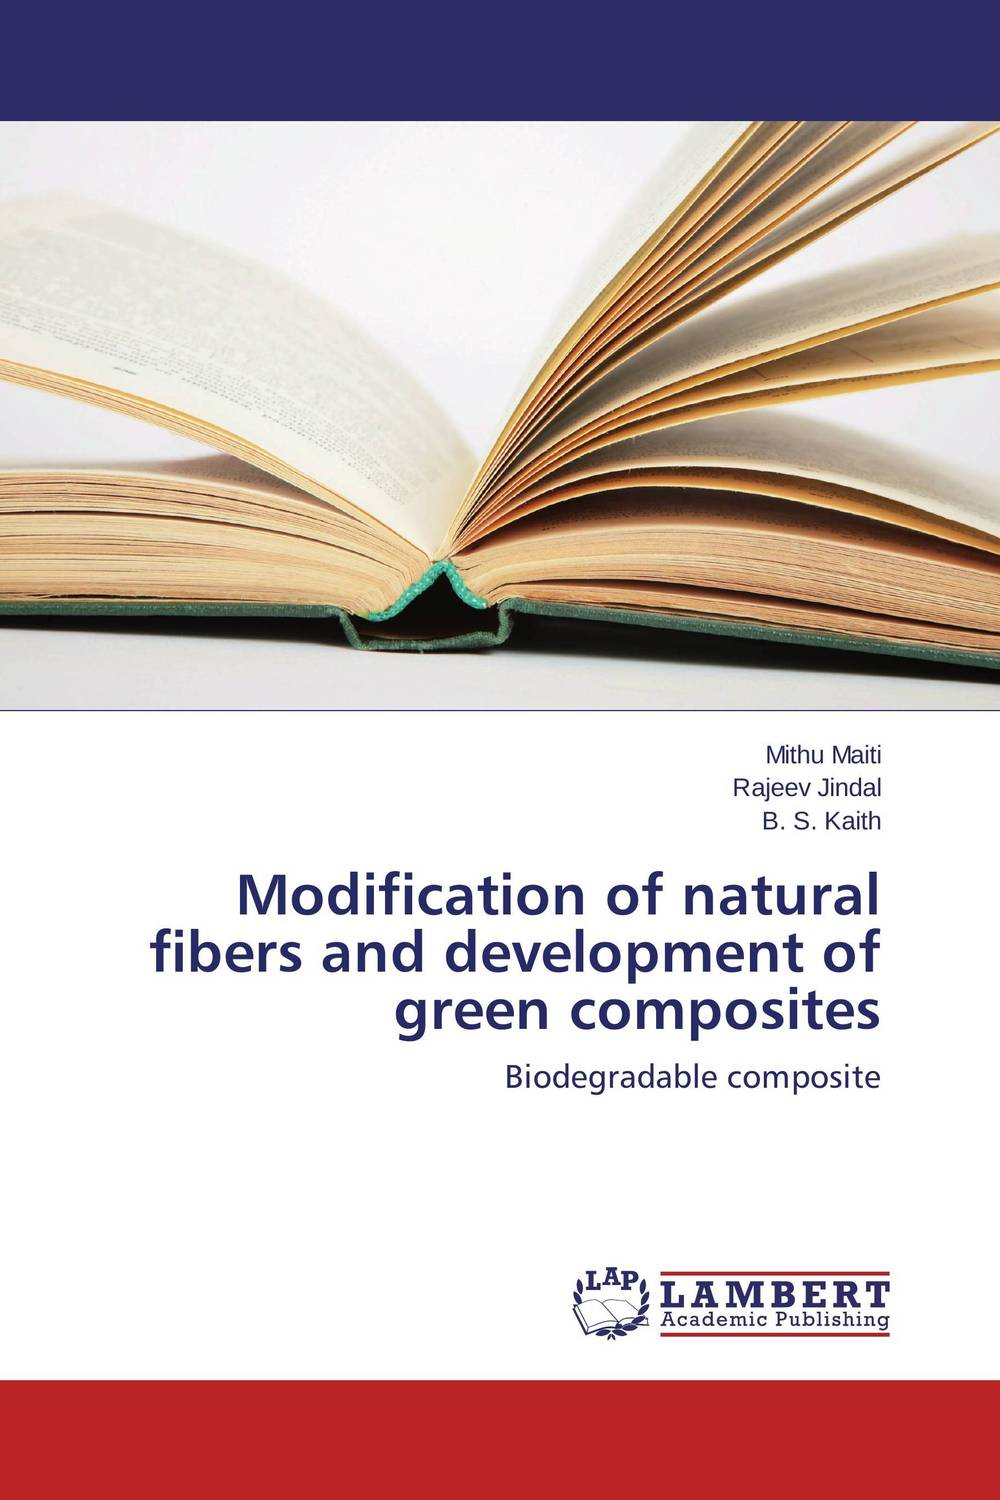 цена на Modification of natural fibers and development of green composites